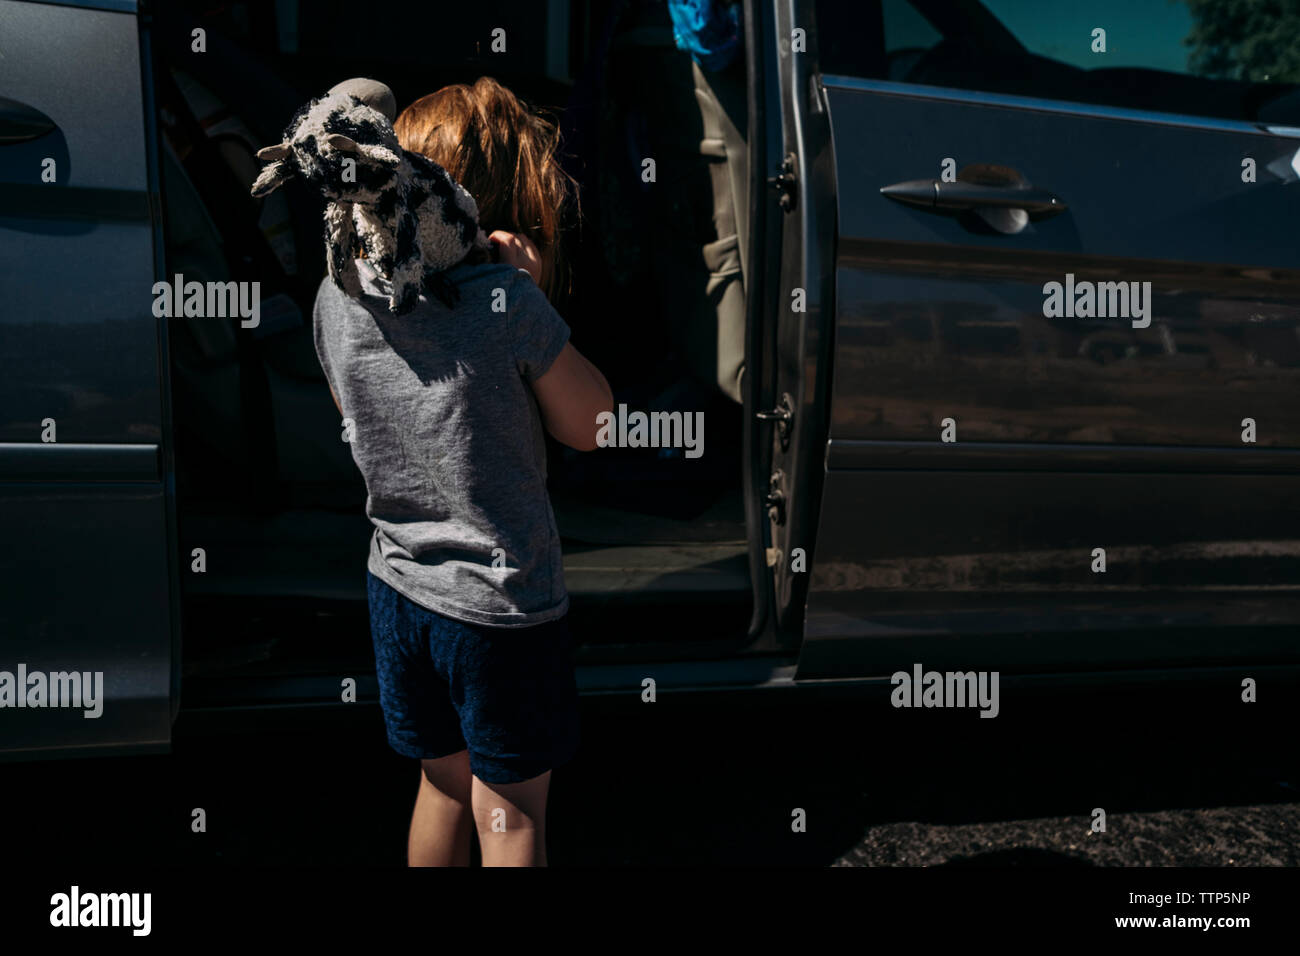 Rear view of girl carrying stuffed toy on shoulders while standing by car door during sunny day Stock Photo